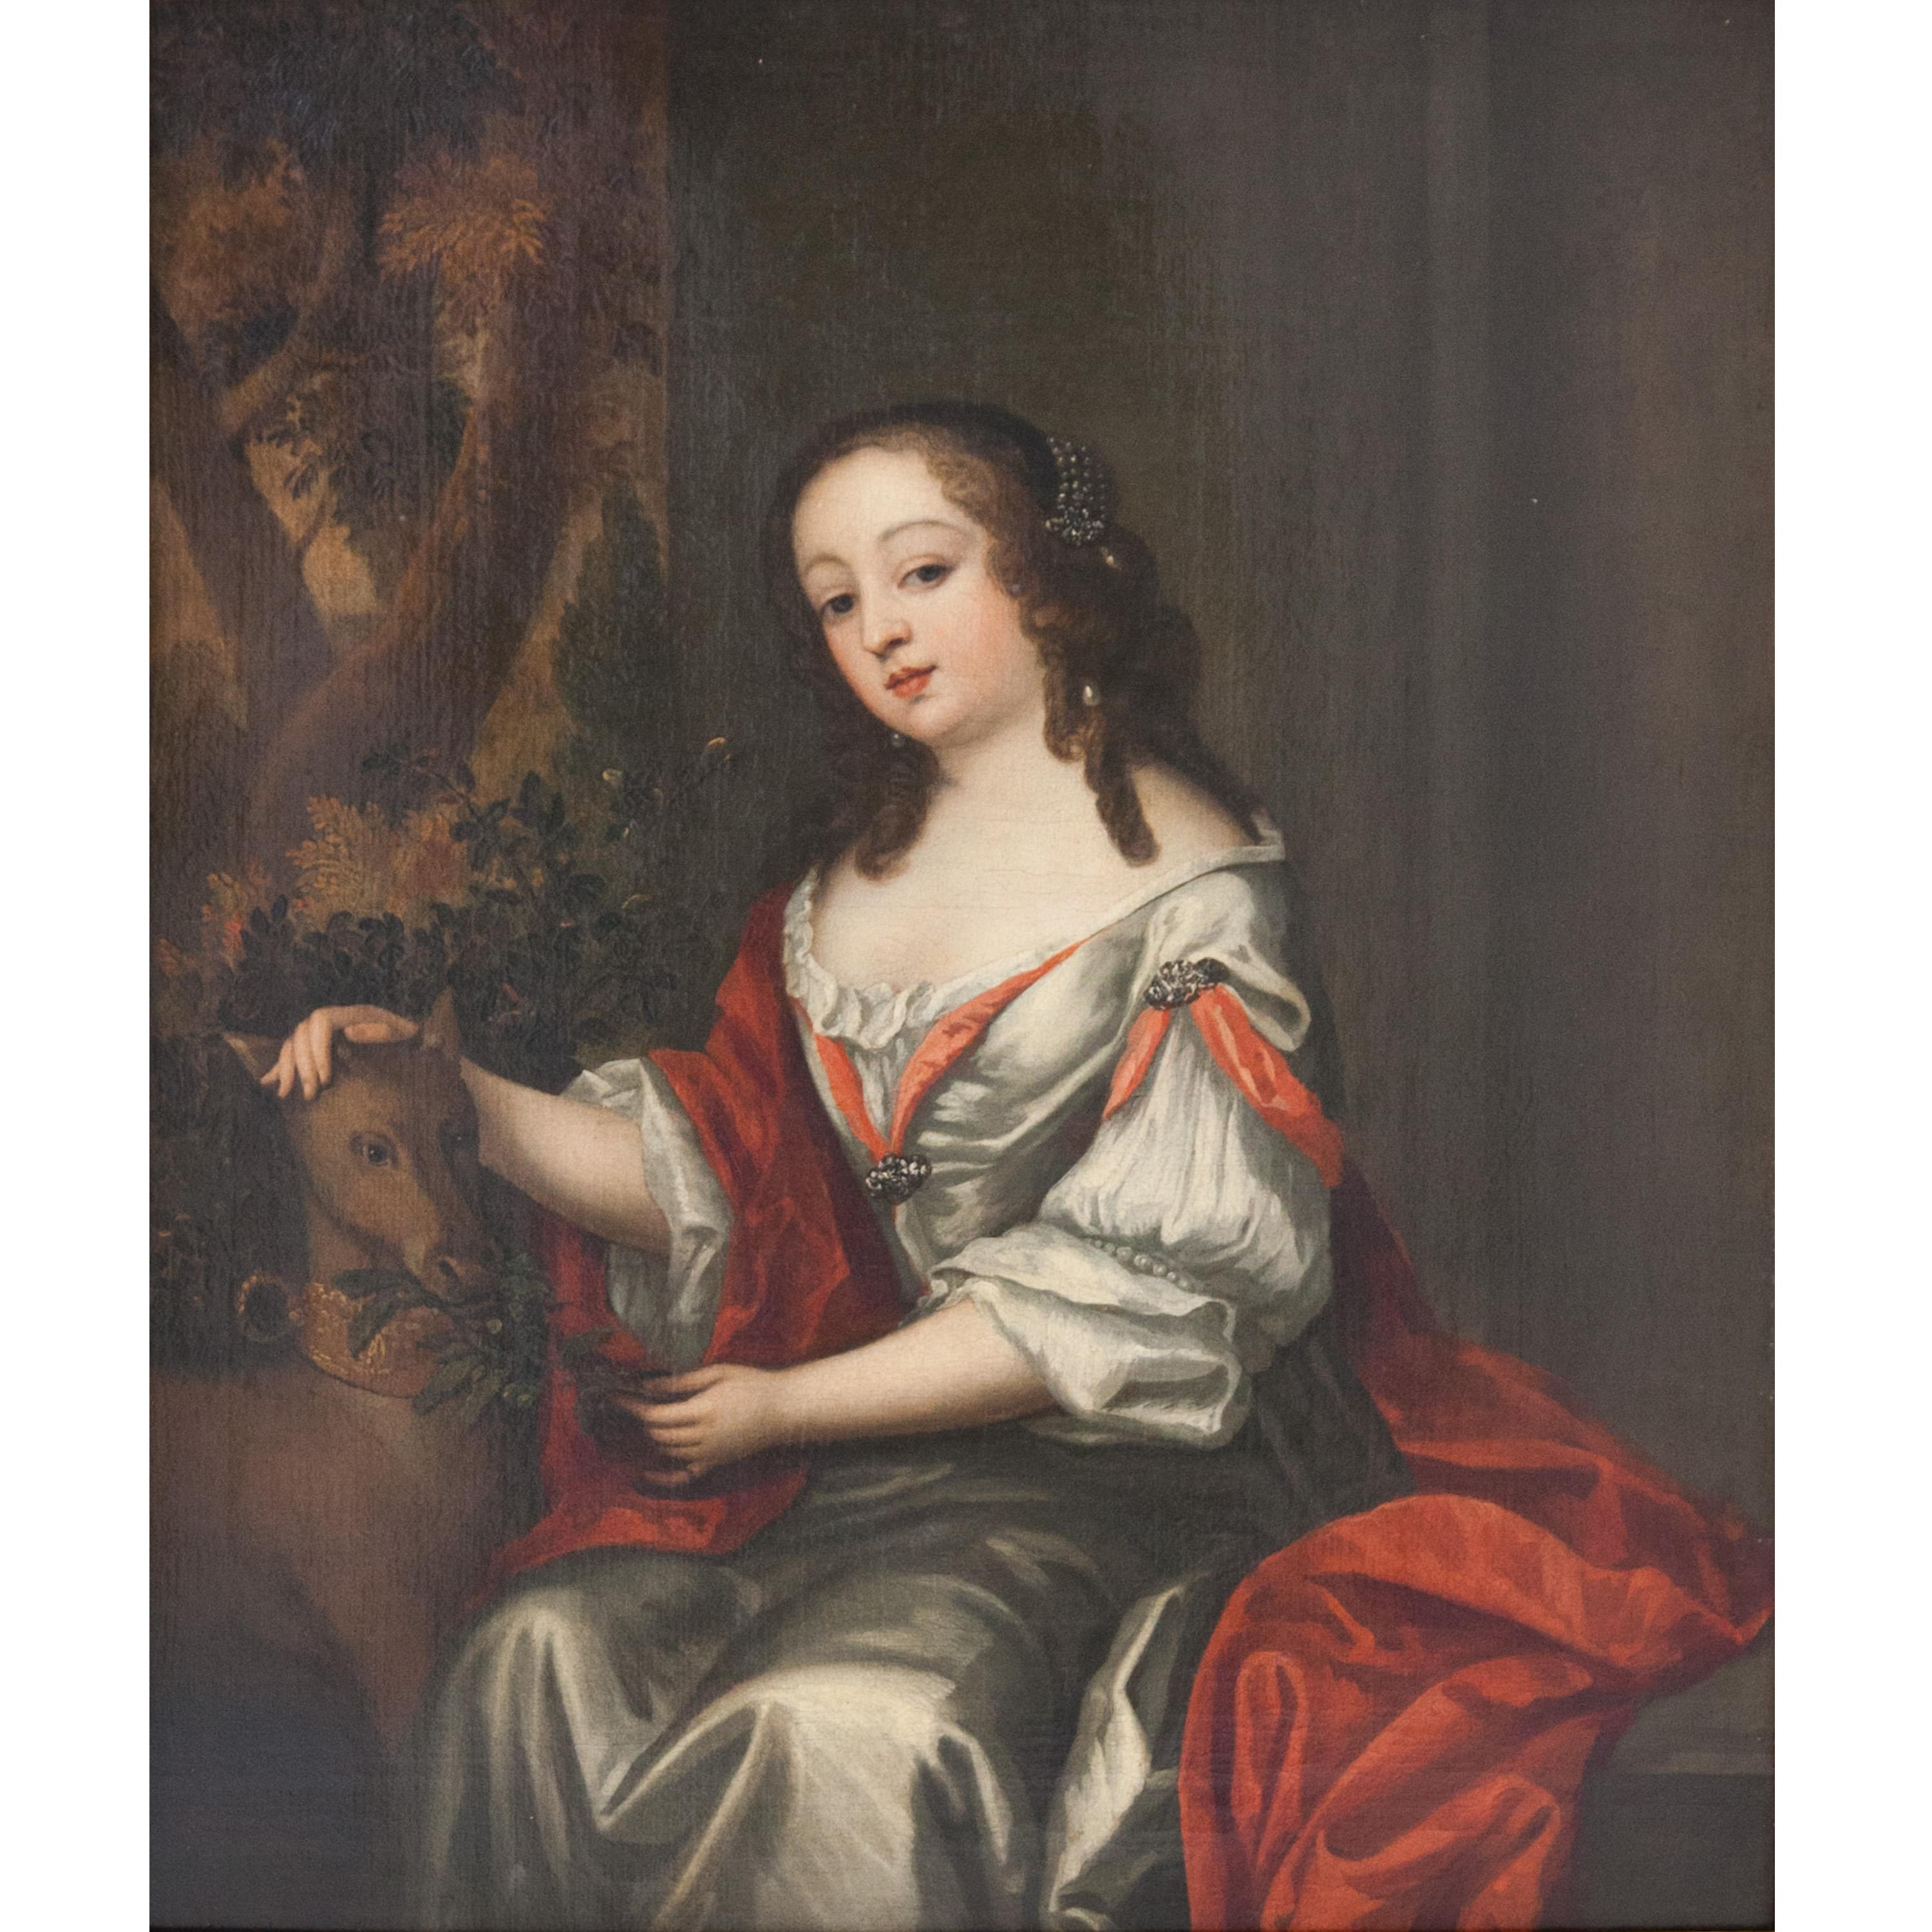 Distinguished Lady with Dog, Oil on Canvas, Early 18th C.